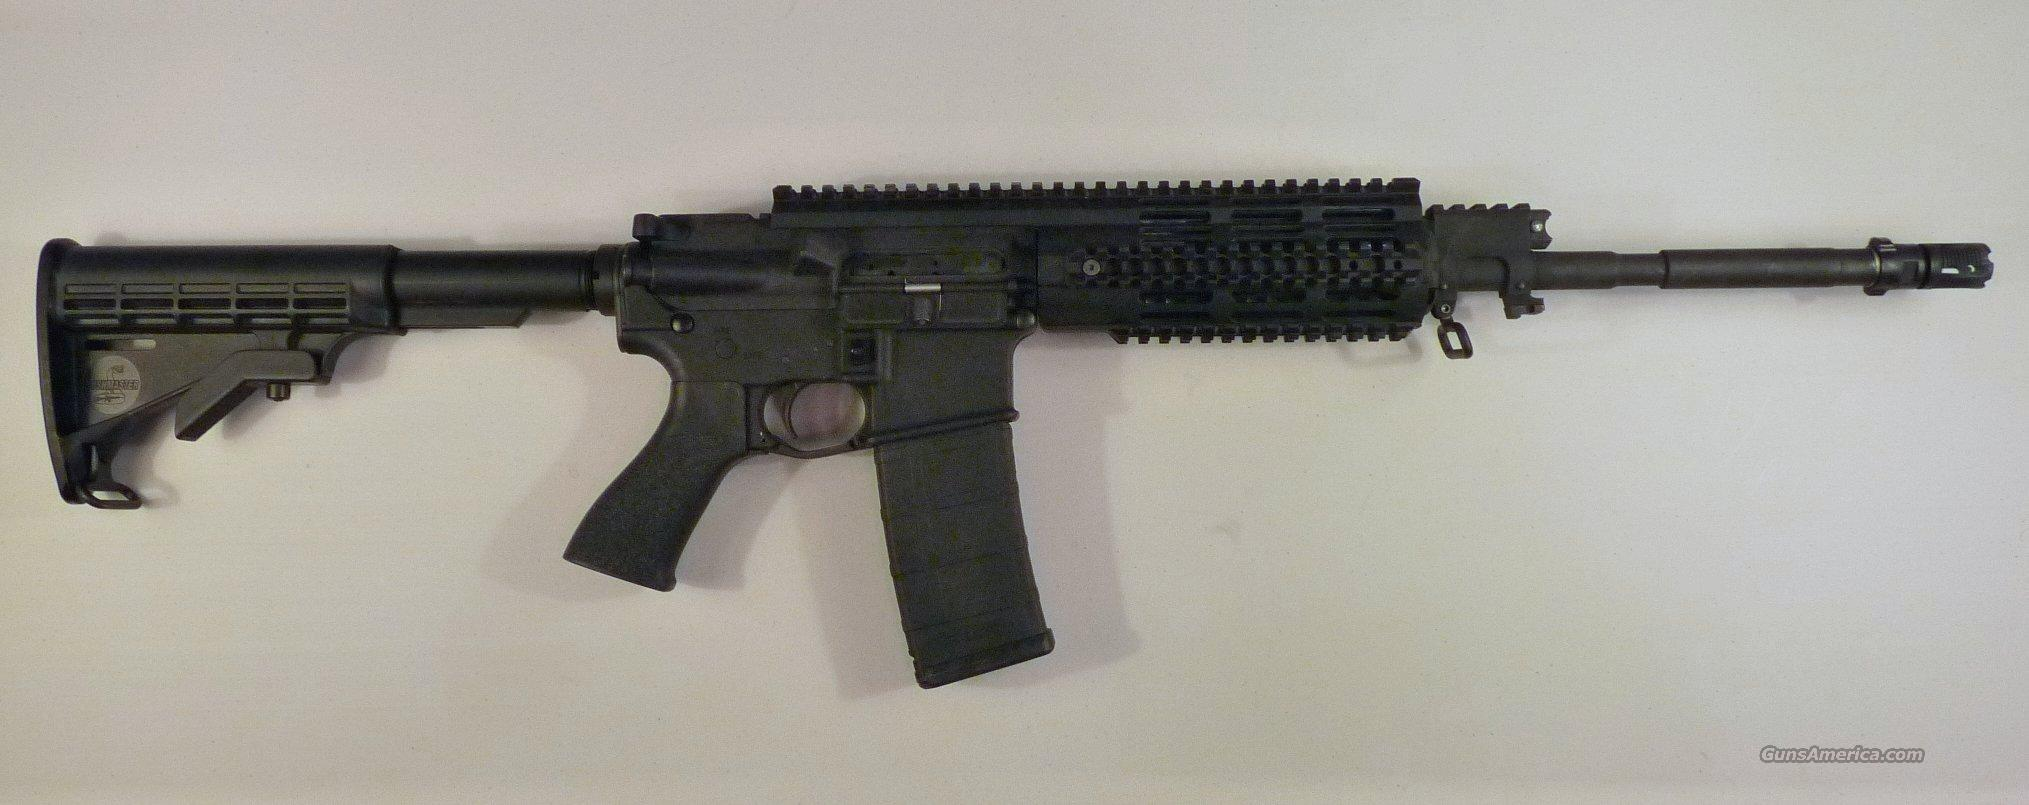 Bushmaster Gas Piston 223 rifle (Used - Like New) with Bushmaster quad rail, Tango Down Battlegrip, MagPul PMag, & Gemtech flash suppressor/bi-lock silencer mount -- Bushmaster Rifle # BCWA3F 16M4-GP  Guns > Rifles > Bushmaster Rifles > Complete Rifles